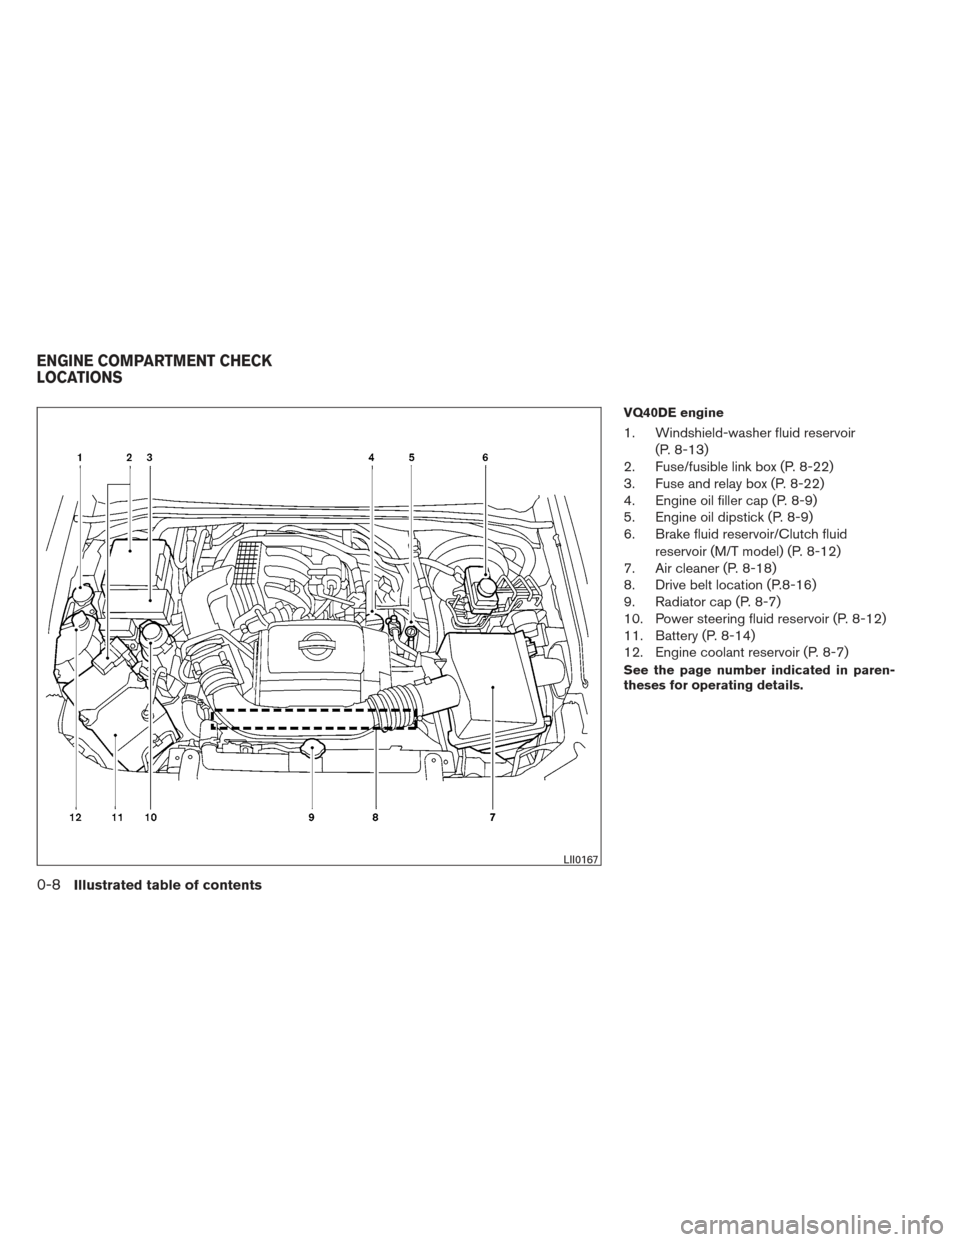 NISSAN XTERRA 2012 N50 / 2.G User Guide VQ40DE engine 1. Windshield-washer fluid reservoir(P. 8-13) 2. Fuse/fusible link box (P. 8-22) 3. Fuse and relay box (P. 8-22) 4. Engine oil filler cap (P. 8-9) 5. Engine oil dipstick (P. 8-9) 6. Brak